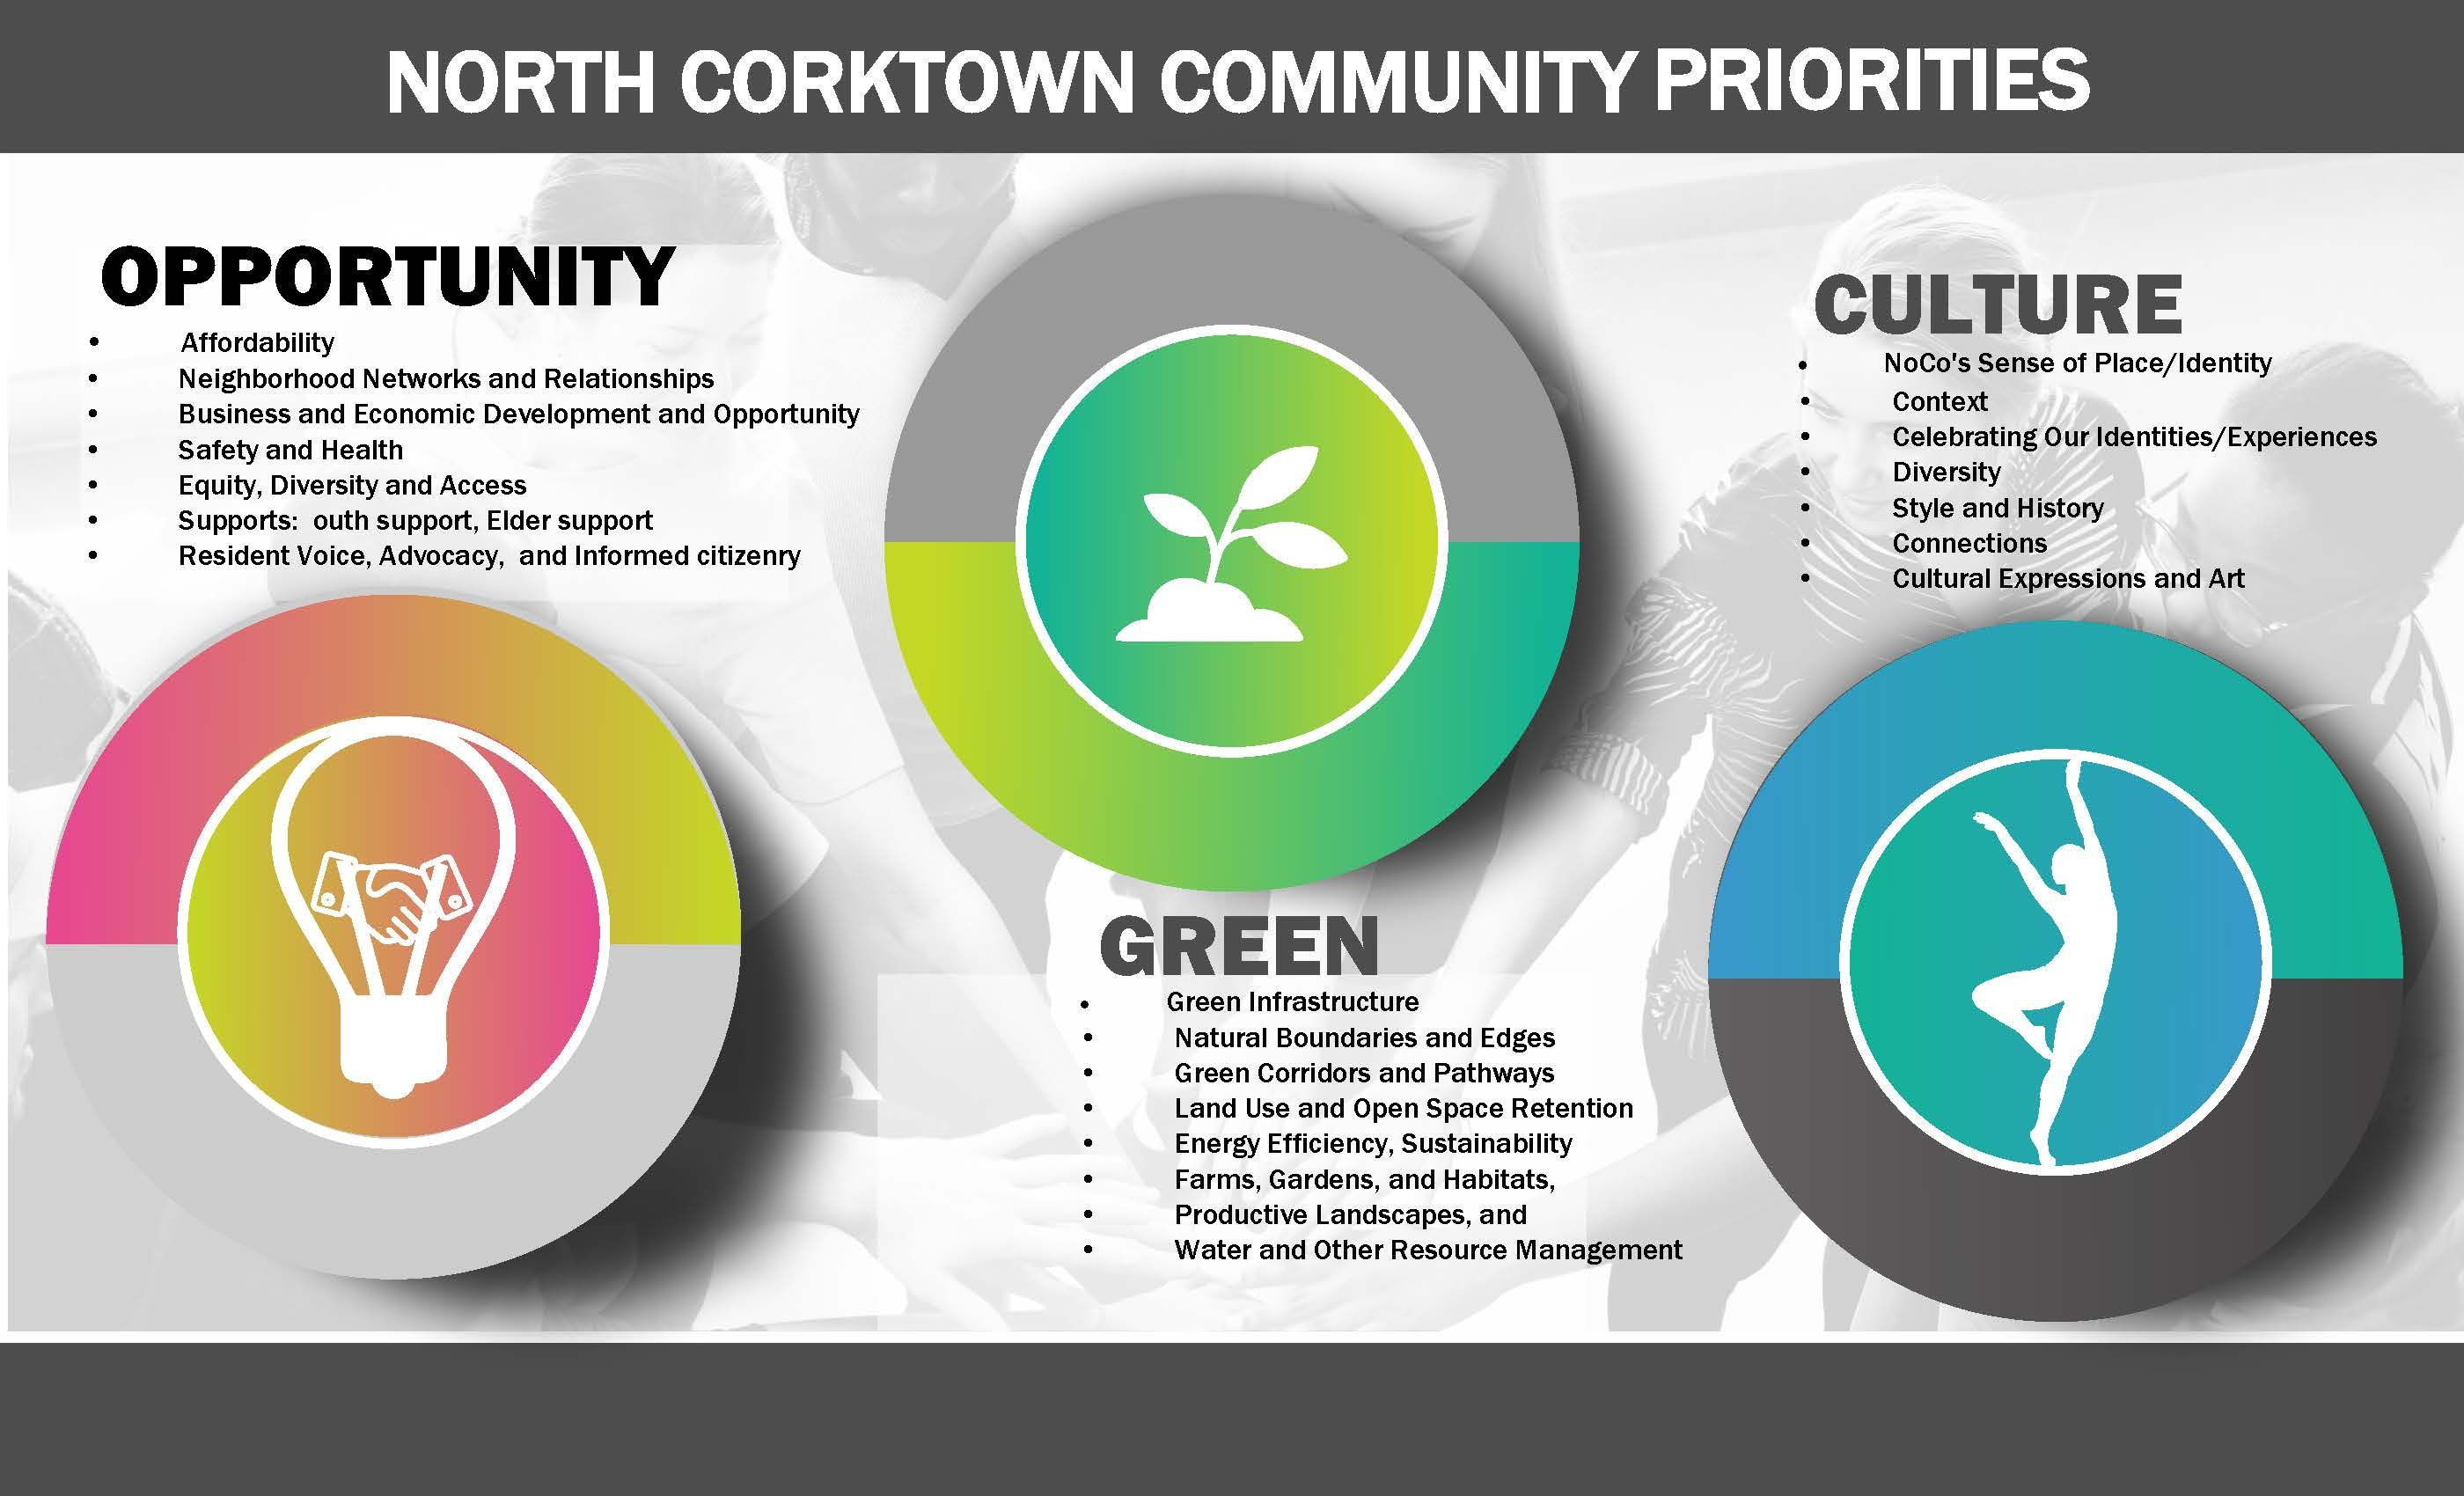 NoCo Guiding Principles/Priorities for Redevelopment